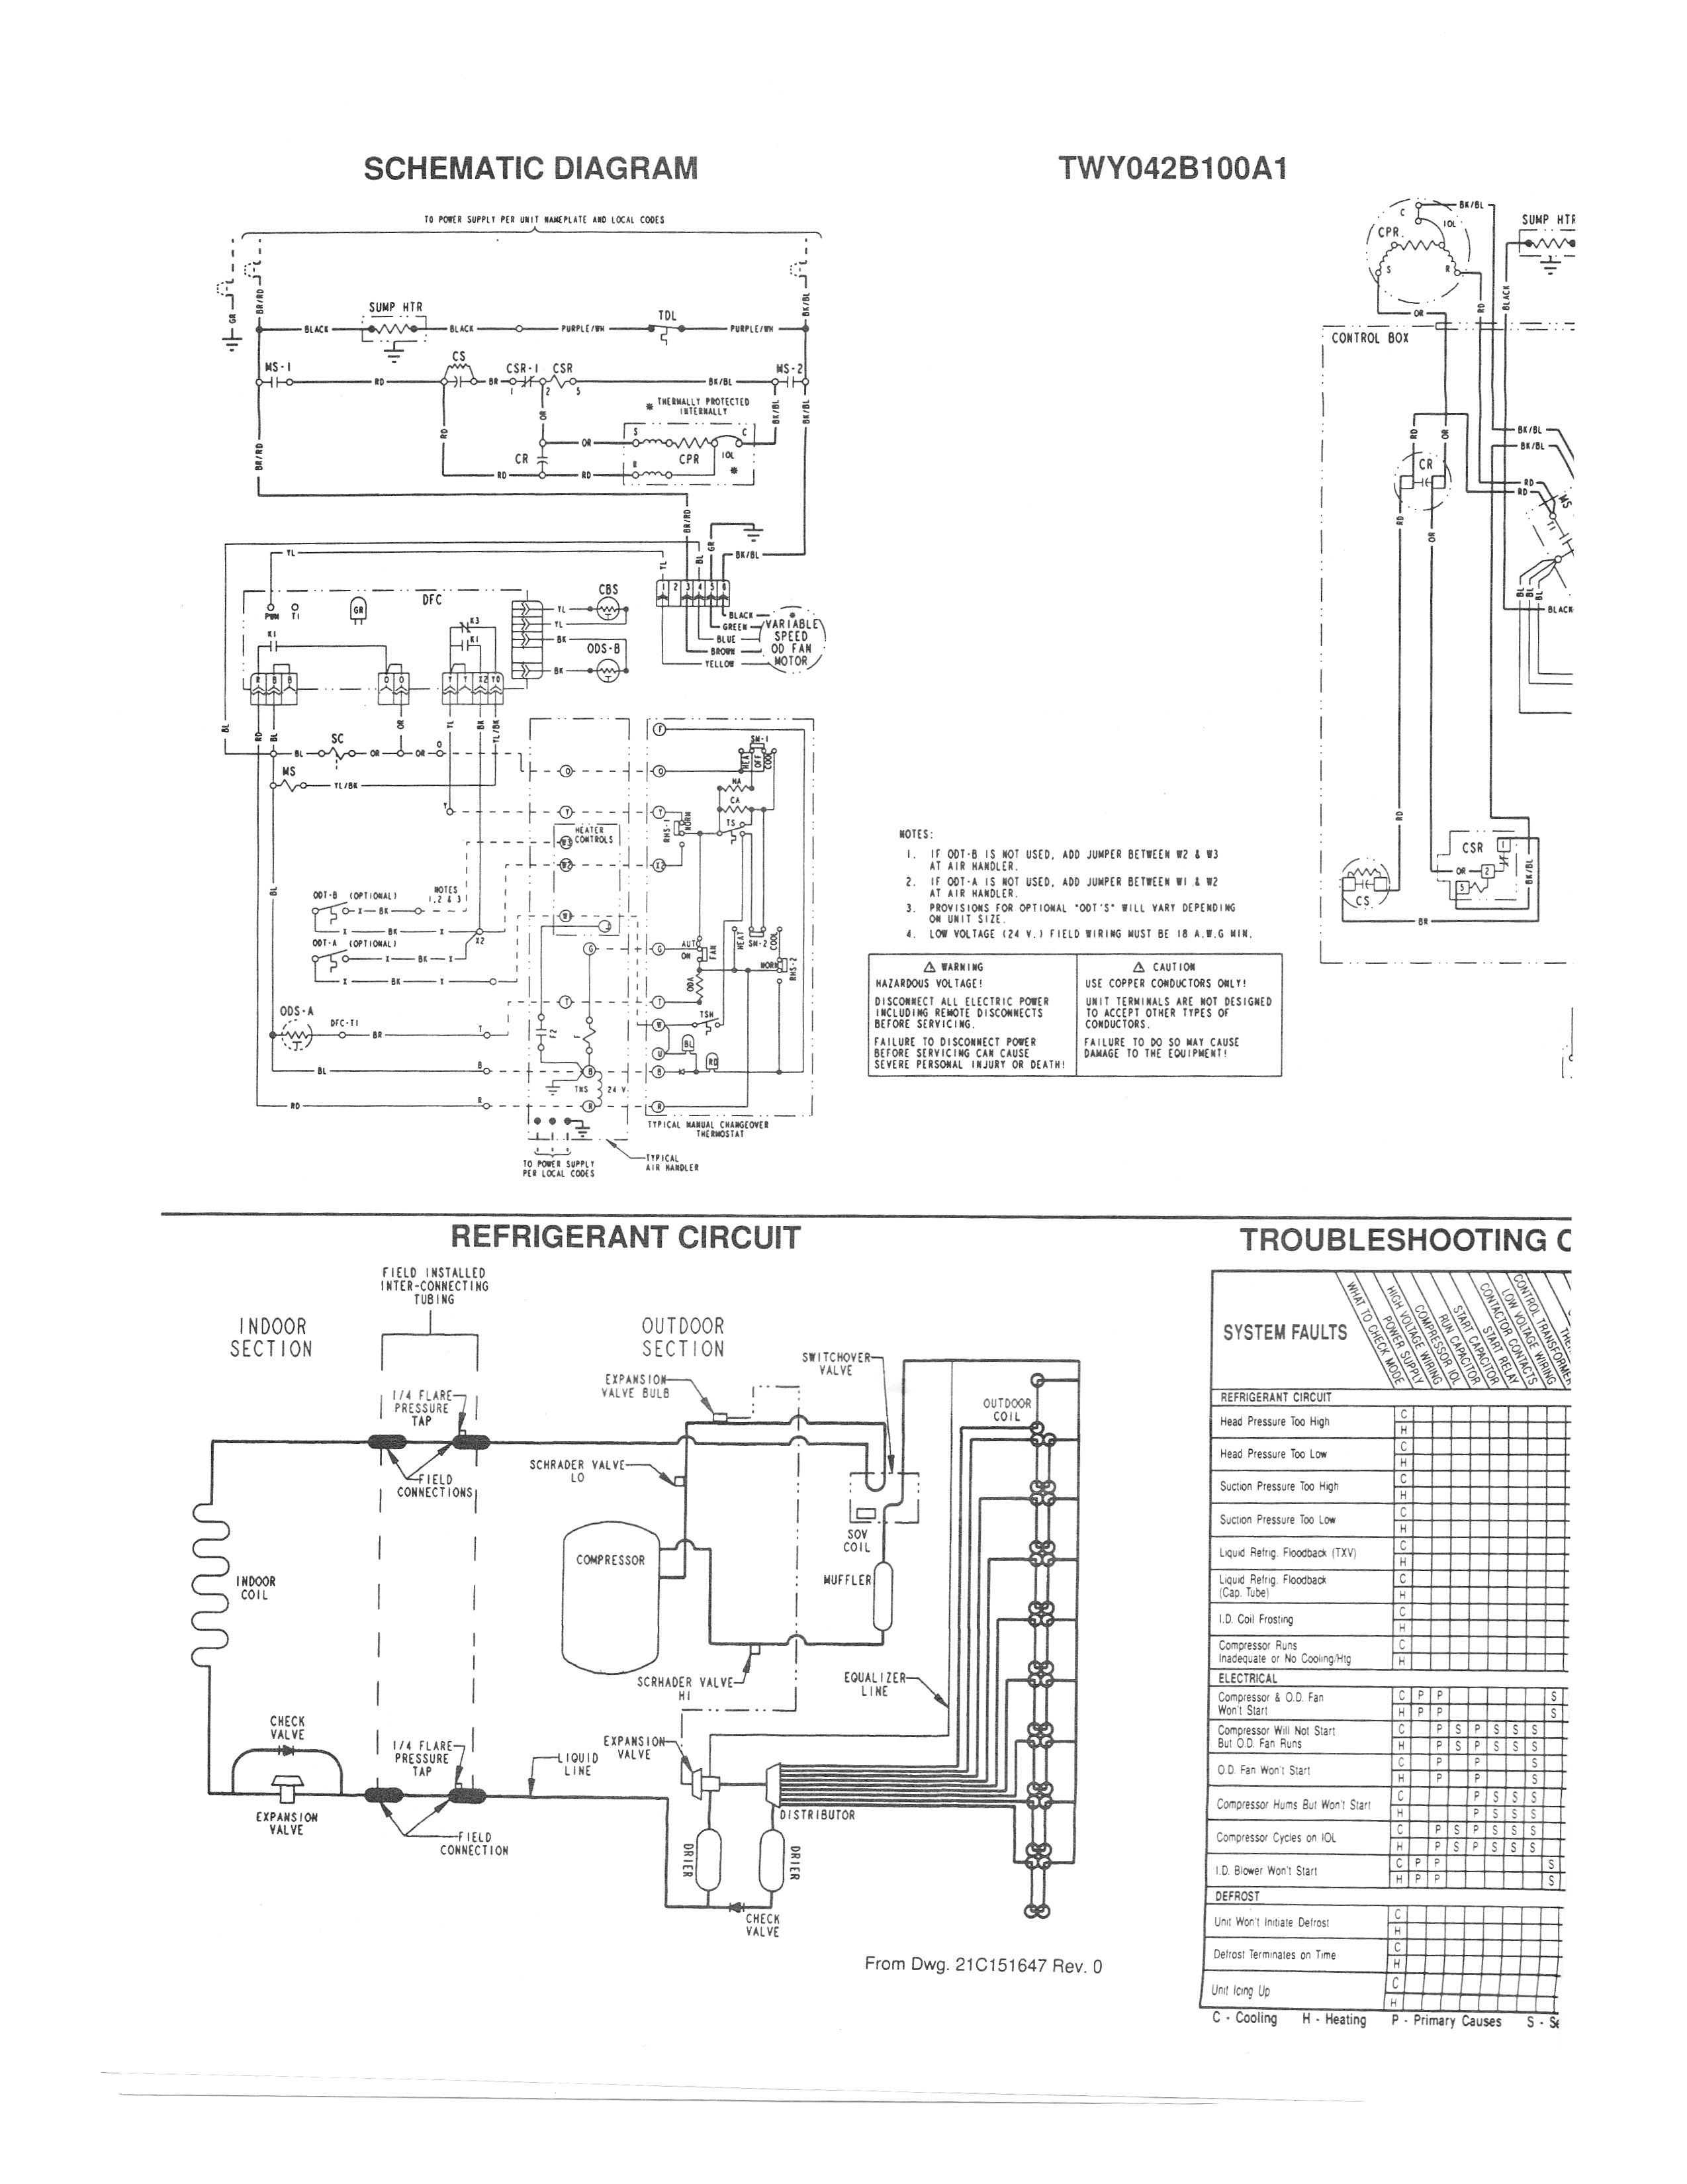 Hvac Wiring Diagram Thermostat Origami Gun Ductles Electrical Database Trane System Manual E Books